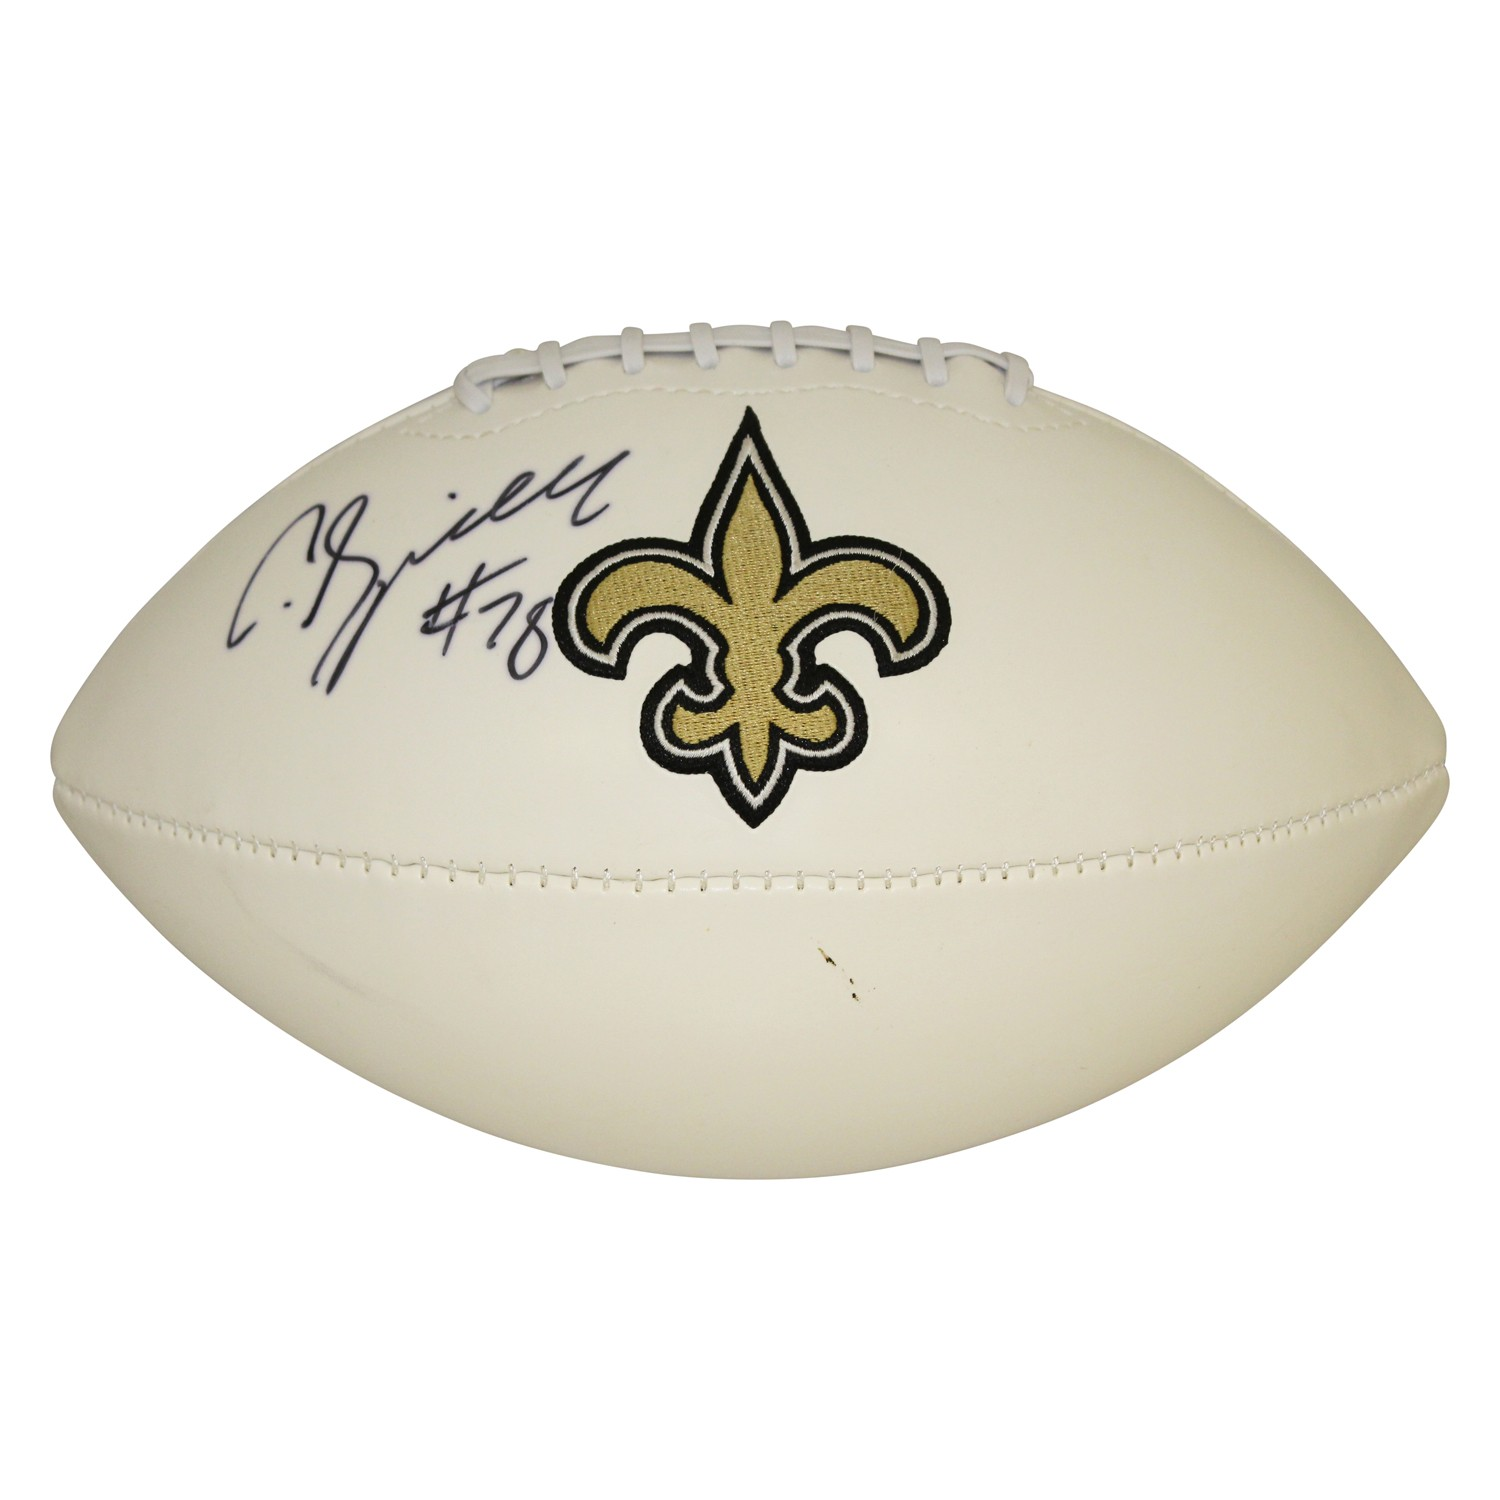 5ef3c0661 CJ Spiller New Orleans Saints Autographed Signed White Panel Logo Football  - Certified Authentic